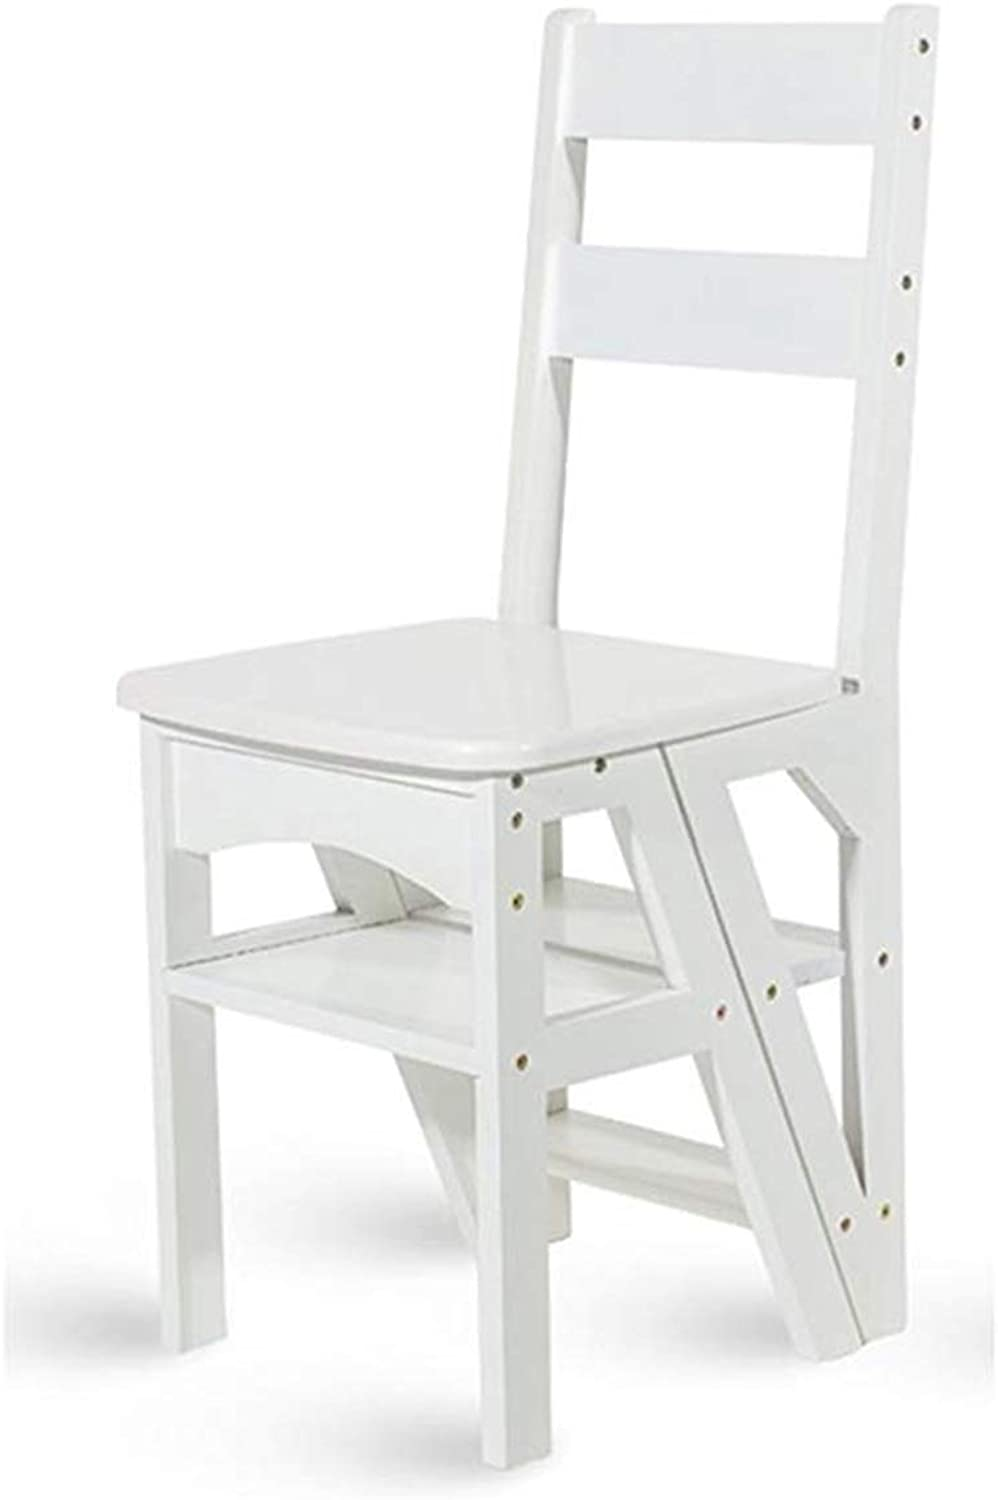 XB-ZDT Household Multi-function Step Stool, Bamboo Solid Wood Stool Folding Chair Dual-use Four-step Ladder Climbing Ladder High Ladder Step Stool Adult Step Stool (color   White)